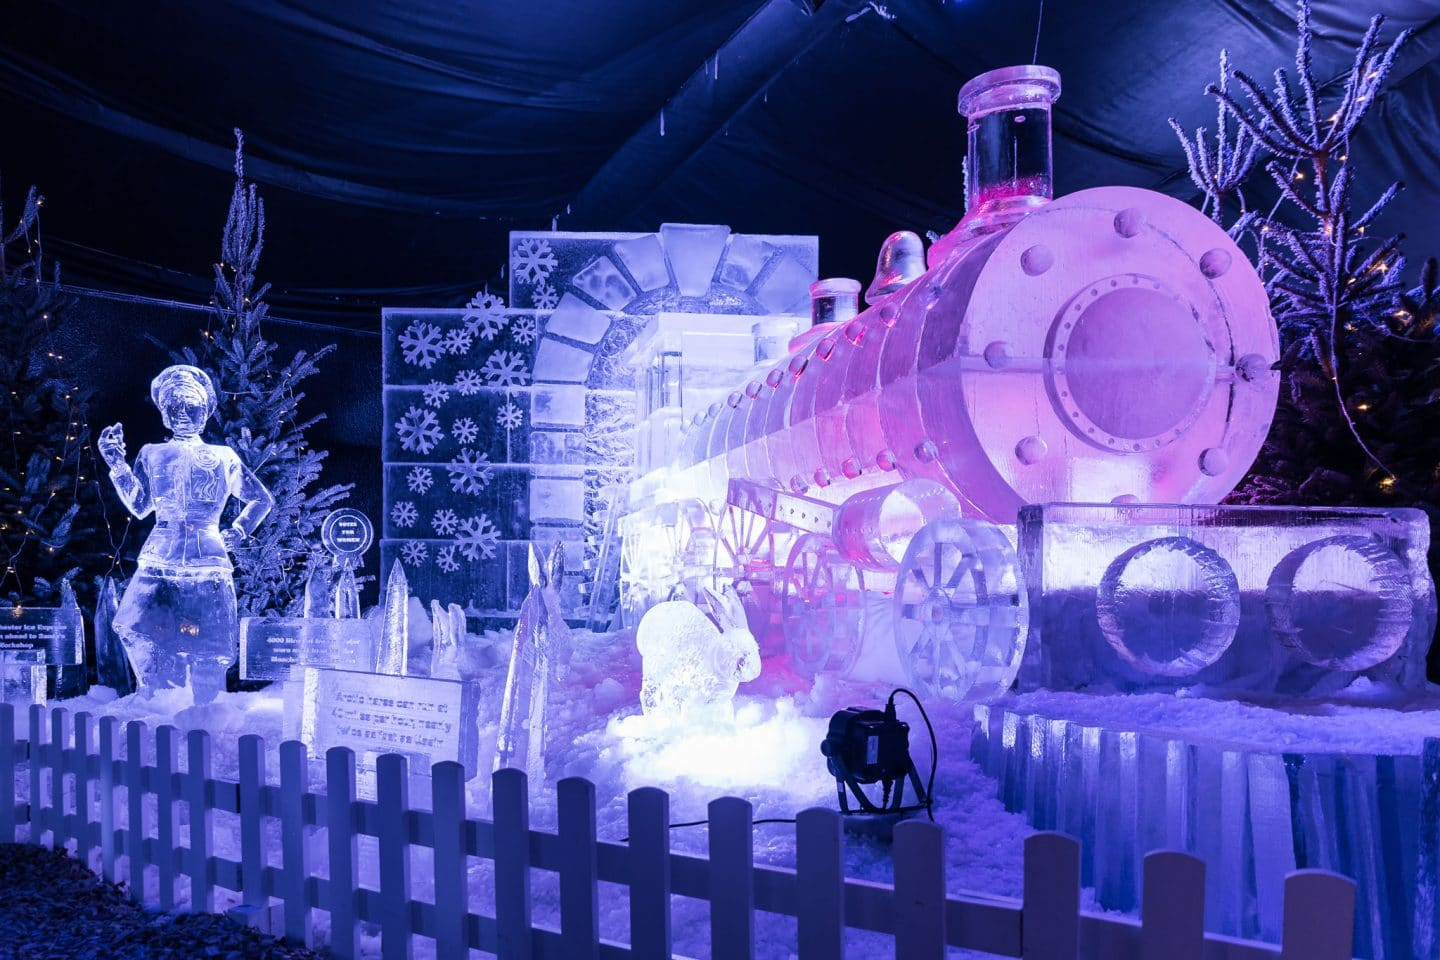 The Ice Village (Complete With Frozen Tiki Bar) Will Return To Manchester This Christmas